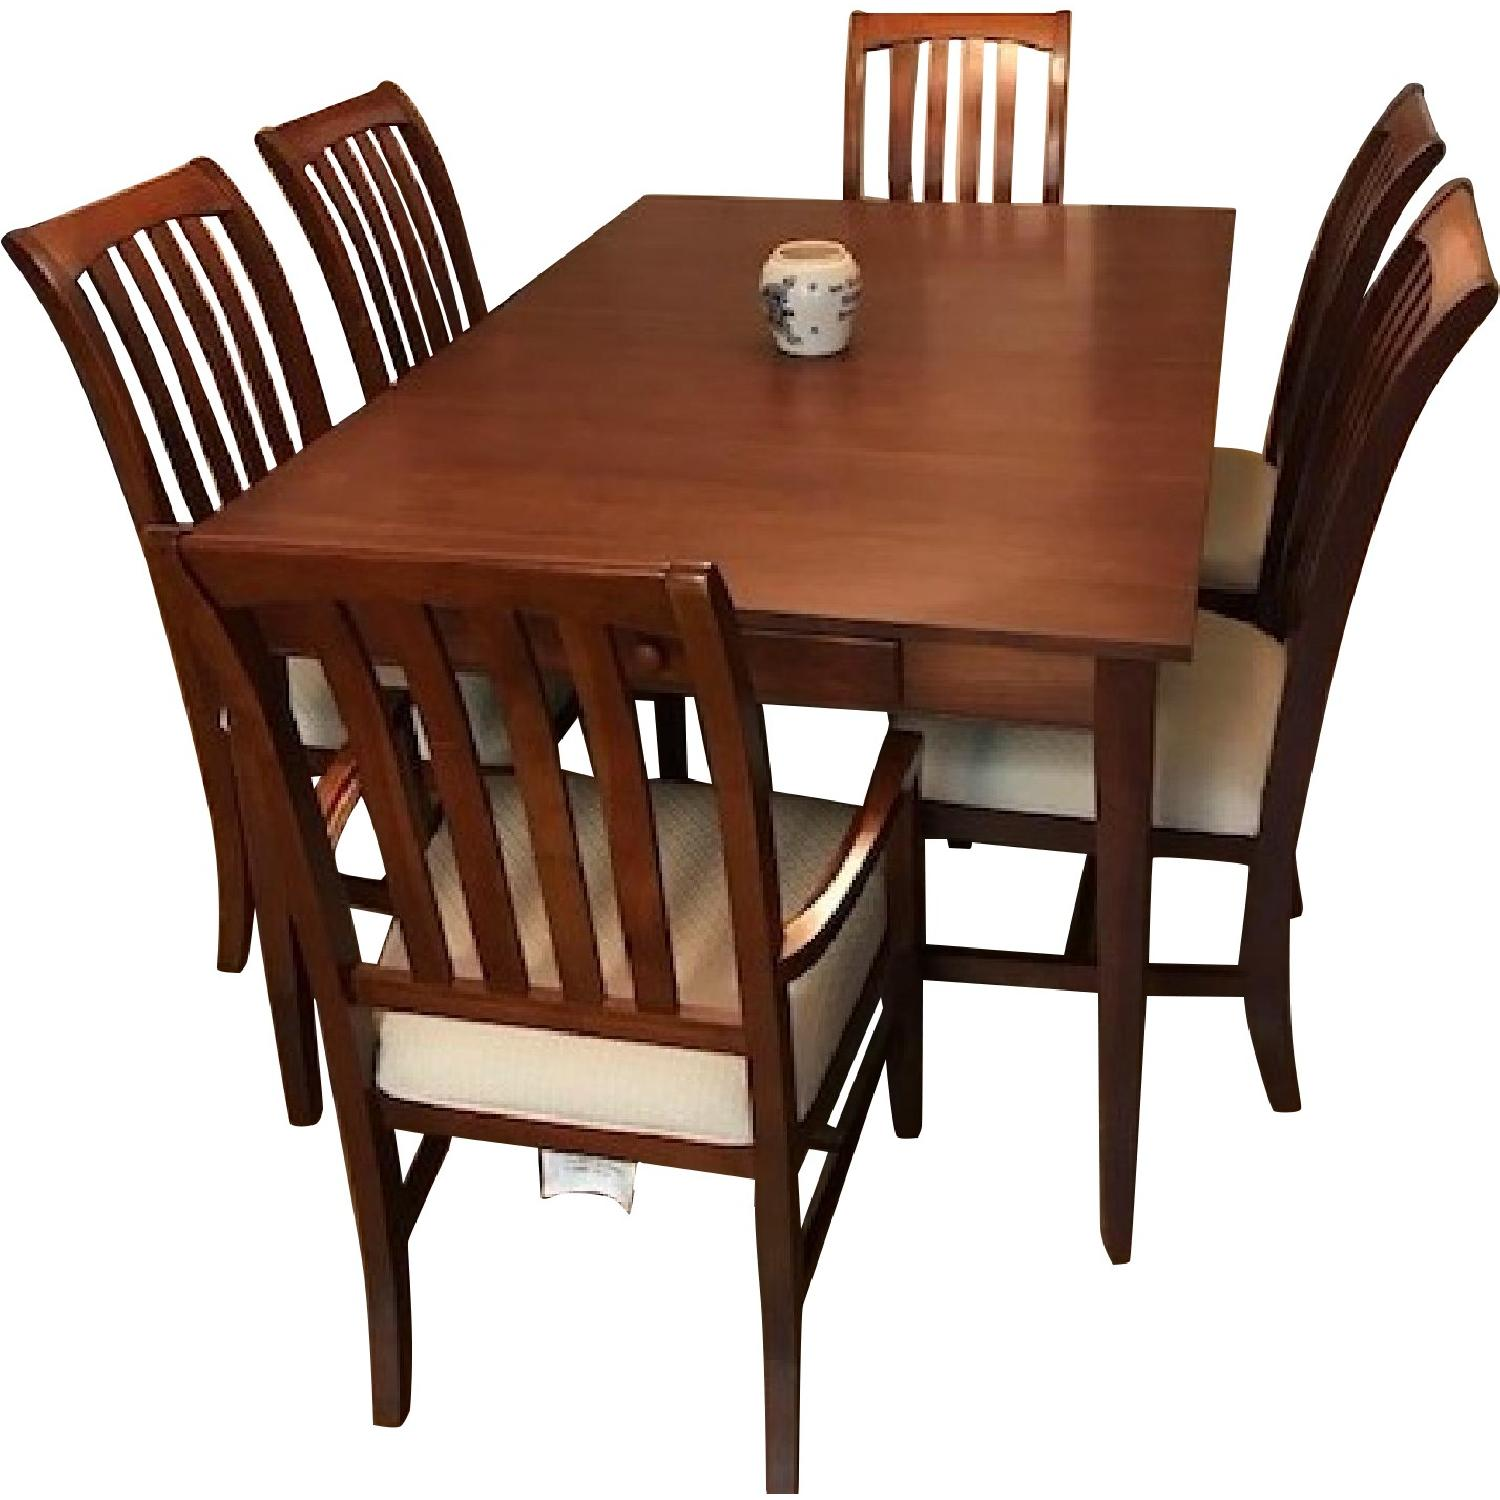 Ethan Allen Mission Square Leg Dining Table w/ 6 Chairs